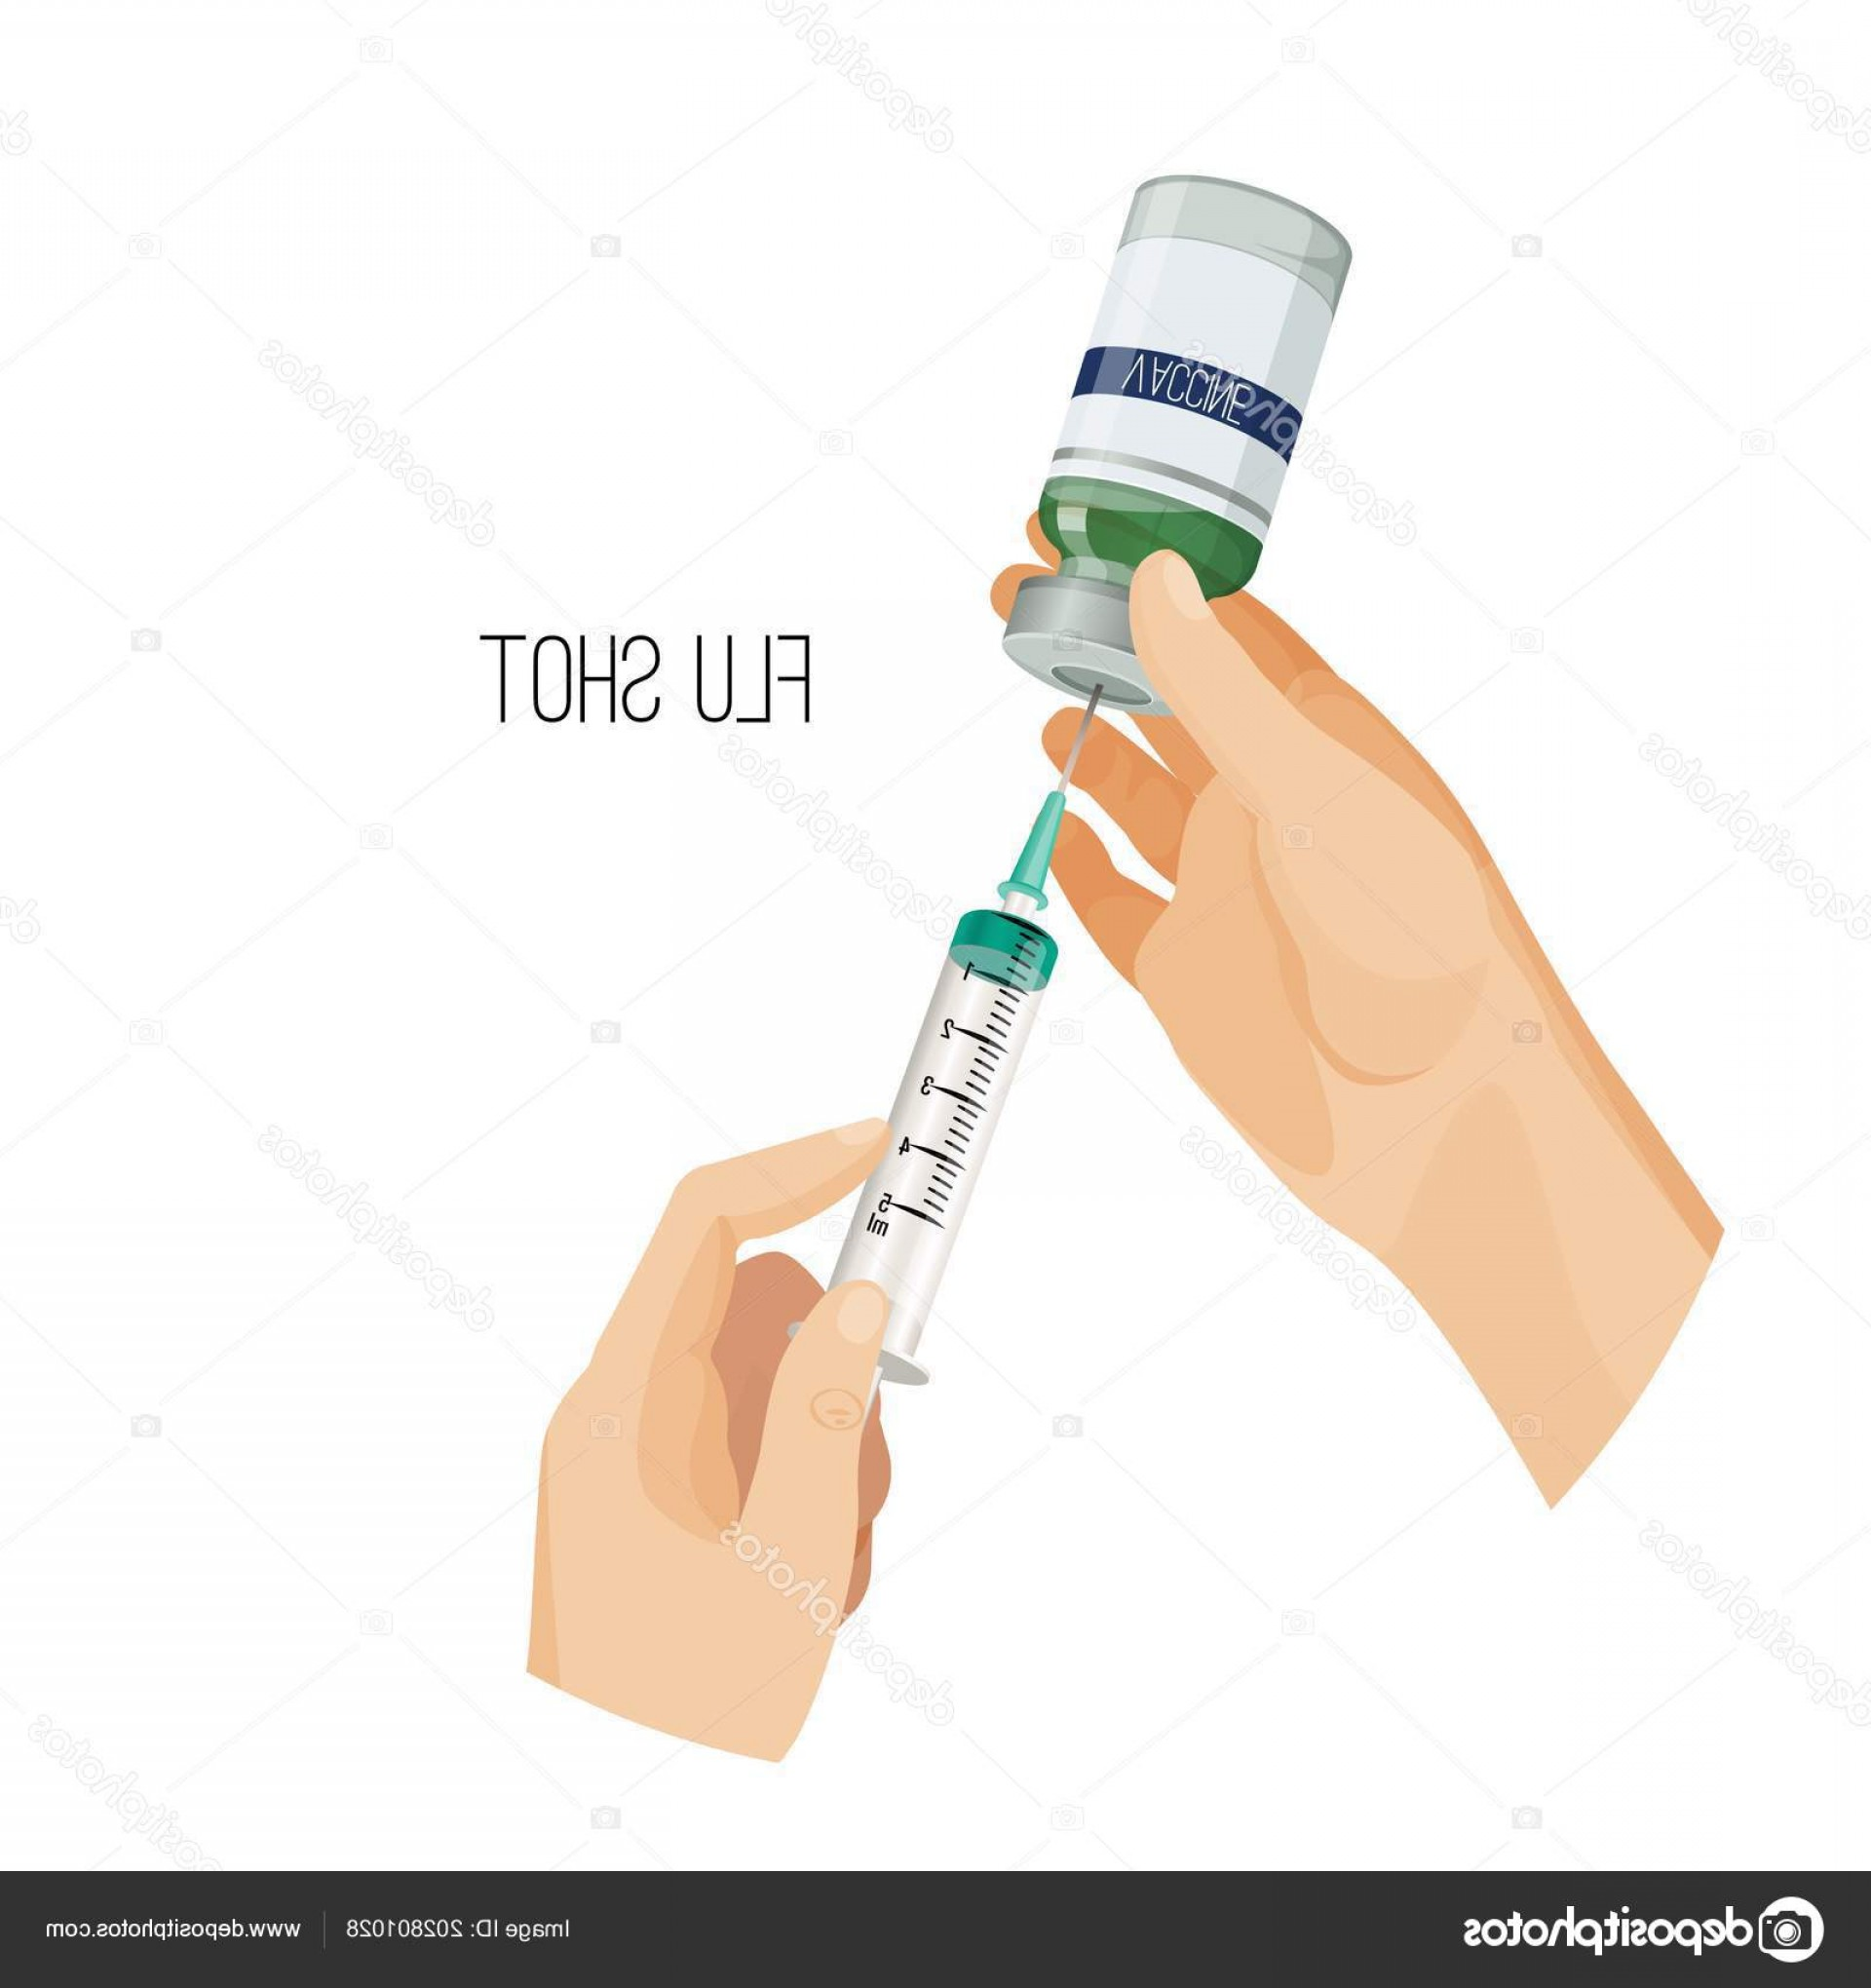 Flu Shot Vector: Stock Illustration Flu Shot Poster With Hands